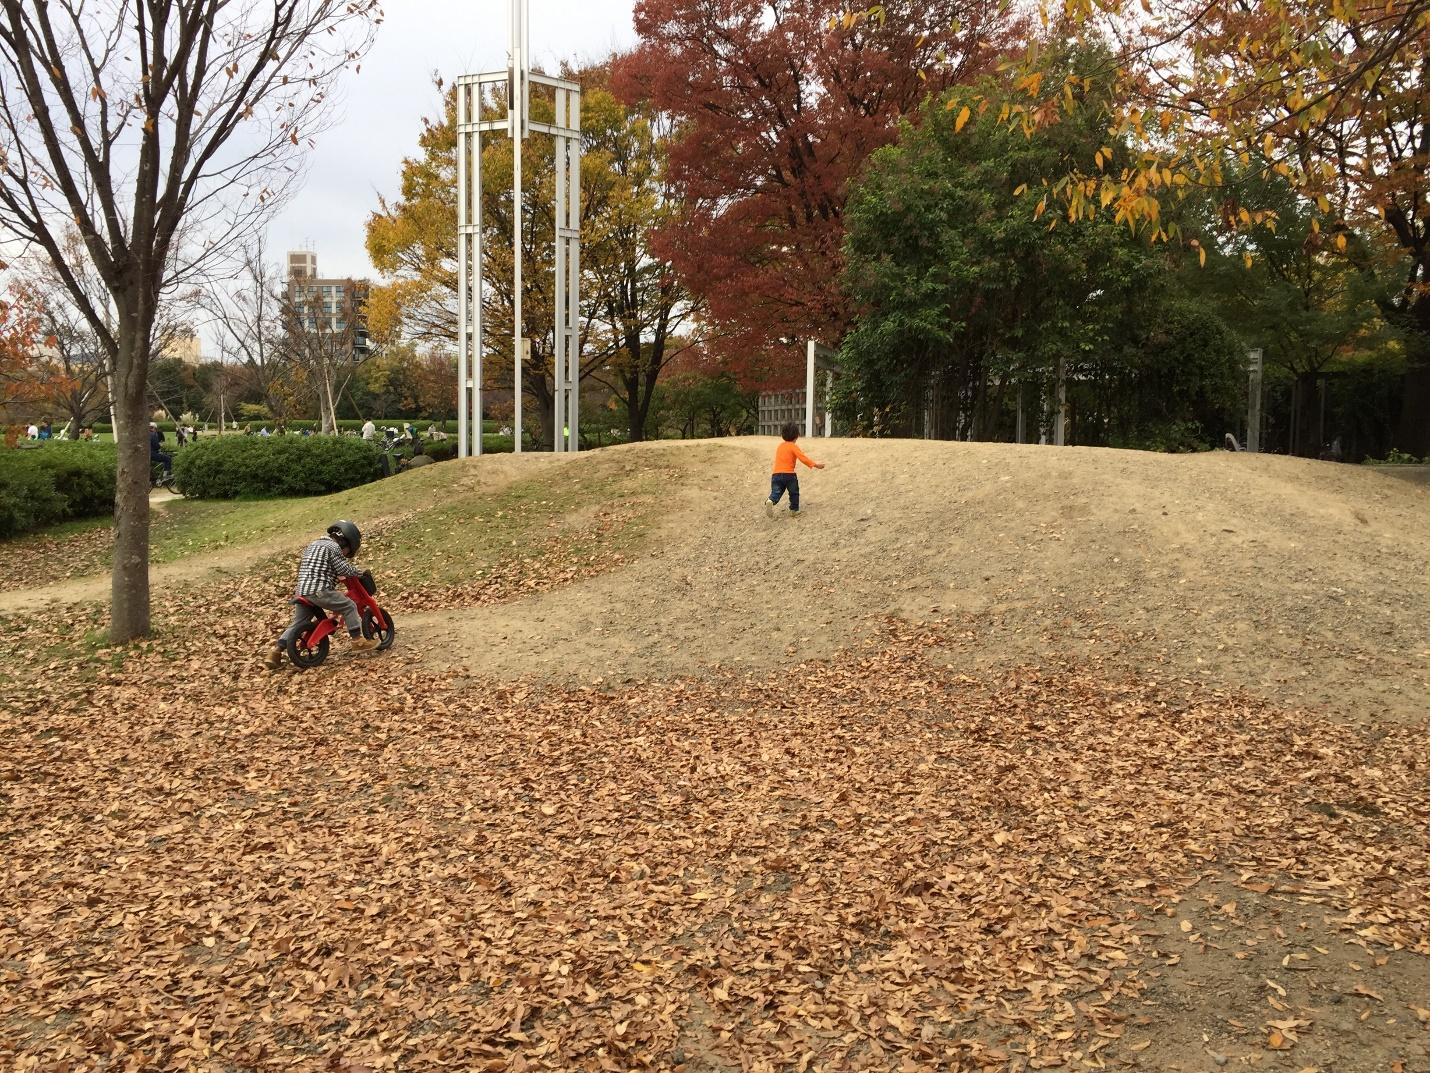 Children playing in the park surrounded by the colored autumn leaves.